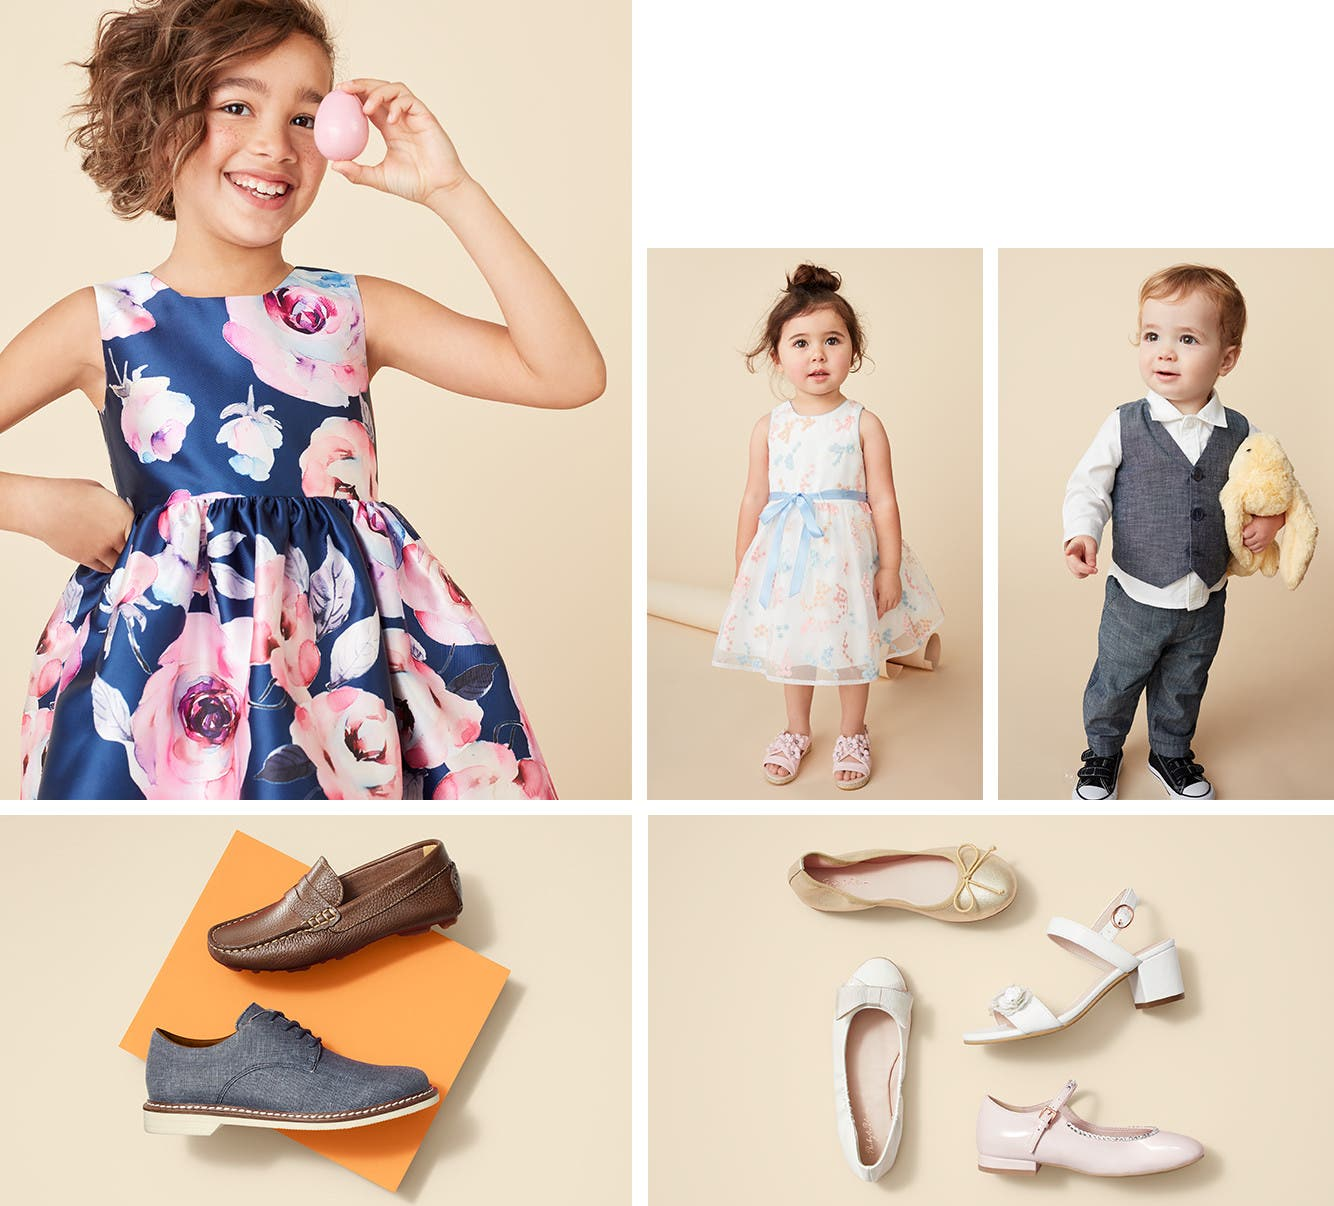 Kids' special occasion clothing, shoes and accessories.